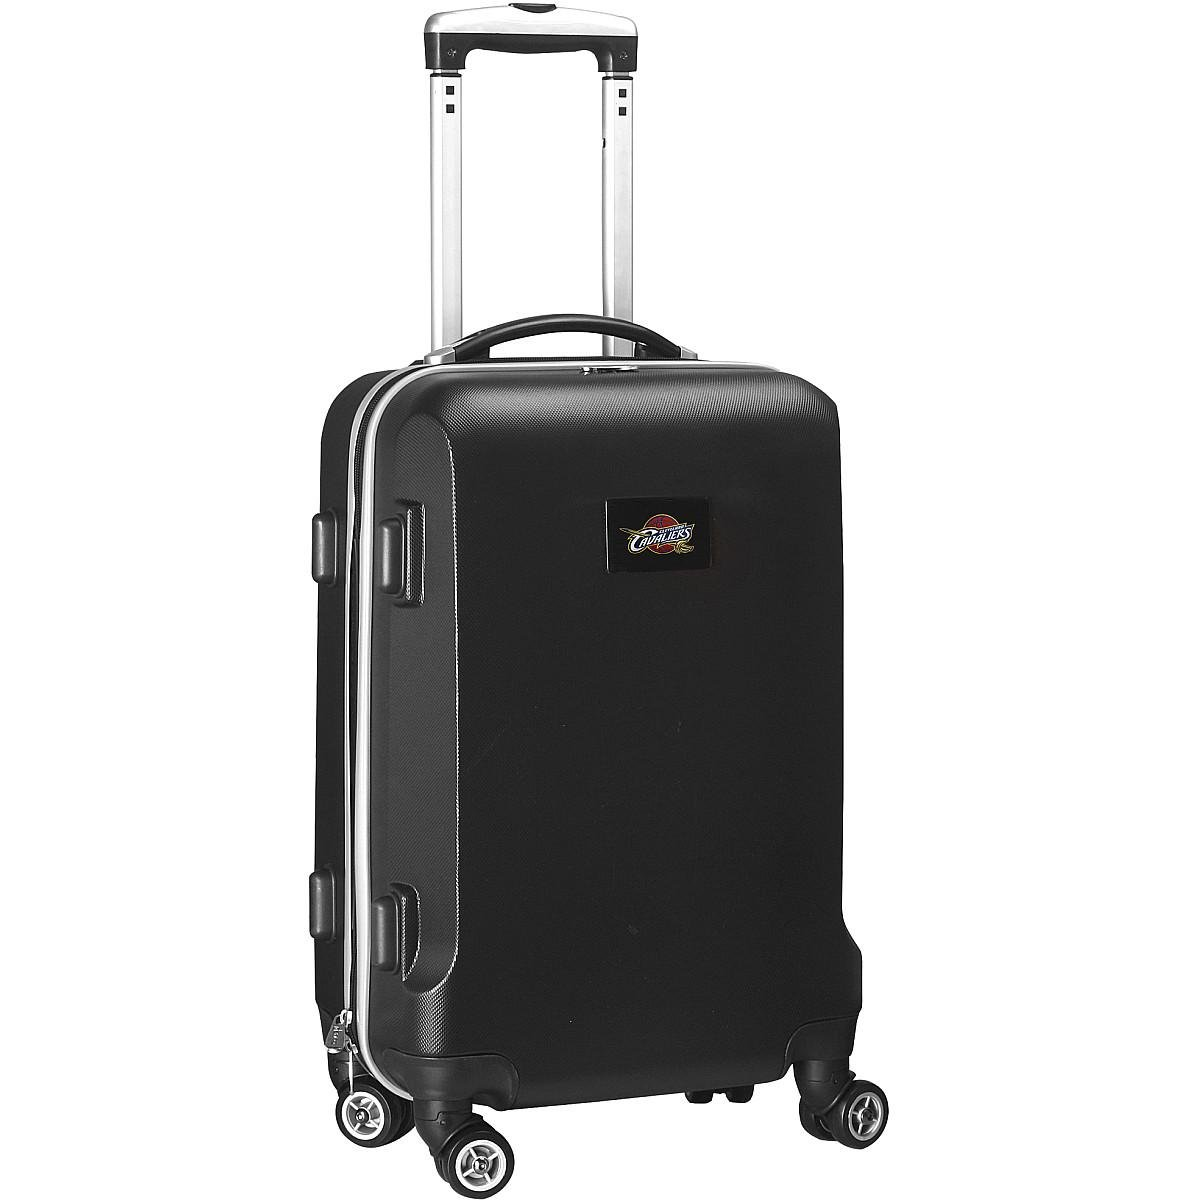 Denco NBA Cleveland Cavaliers Carry-On Hardcase Luggage Spinner, Black by Denco (Image #1)